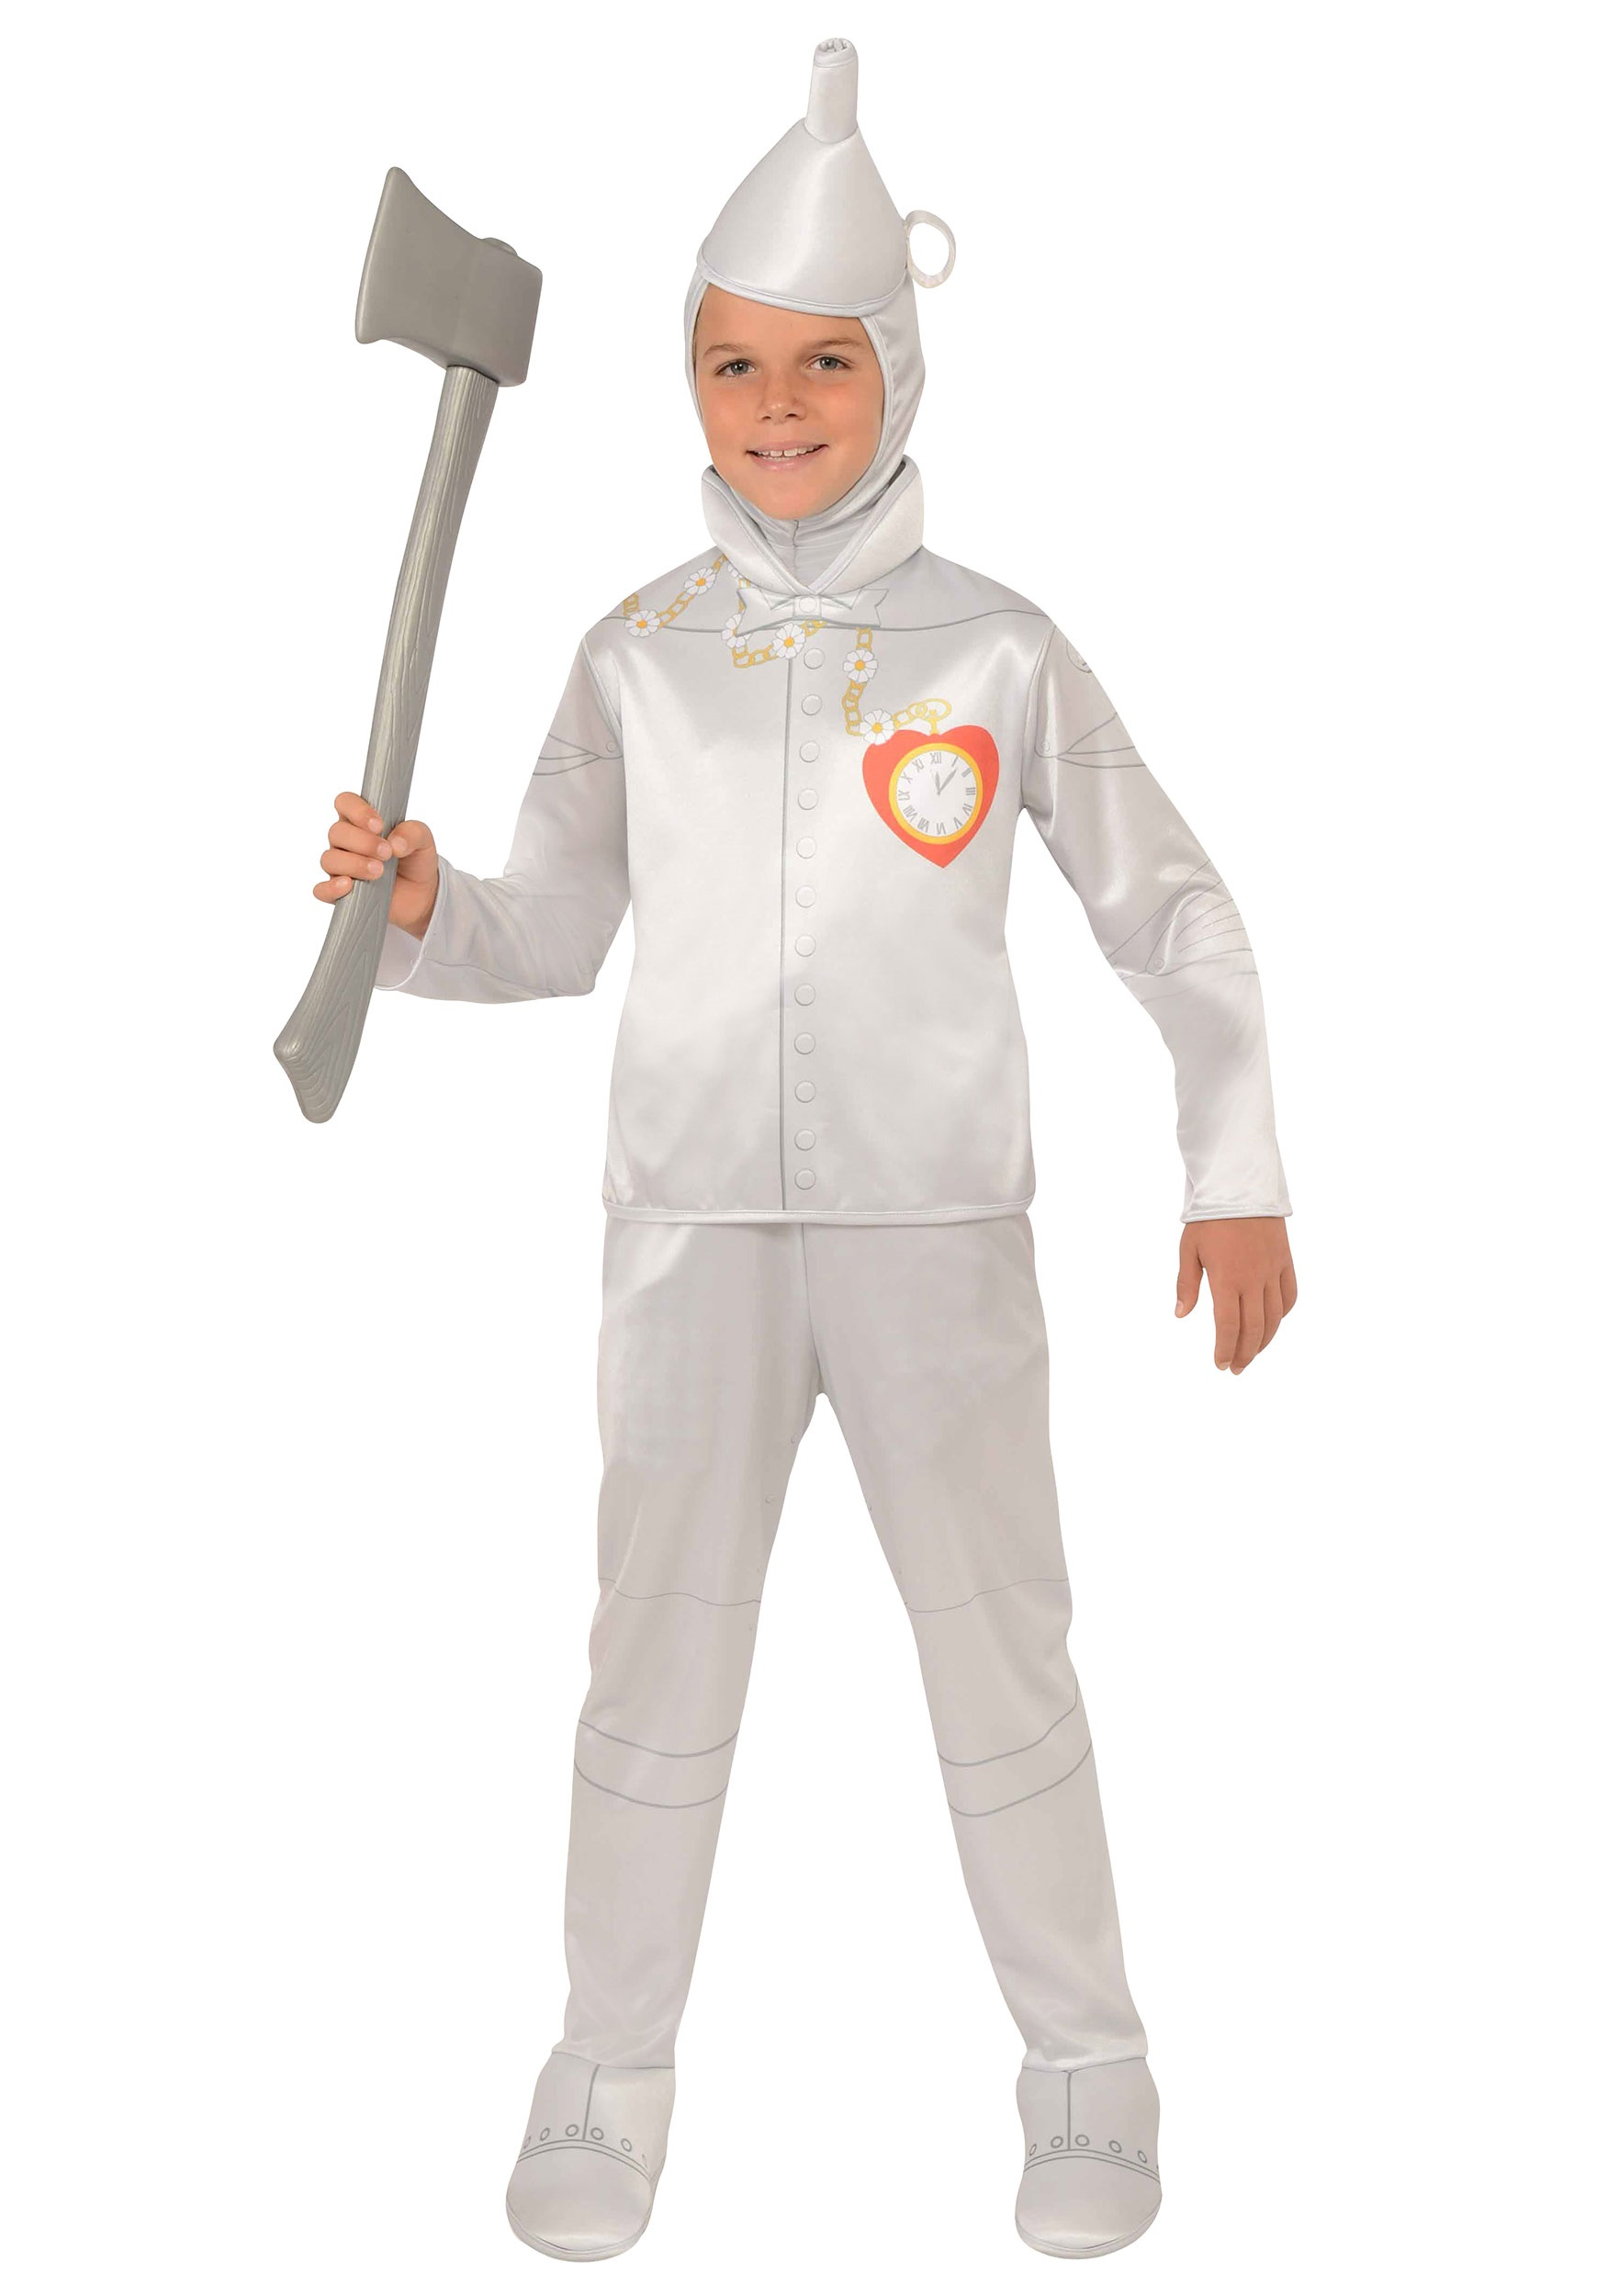 Tin Man Costume for Kids